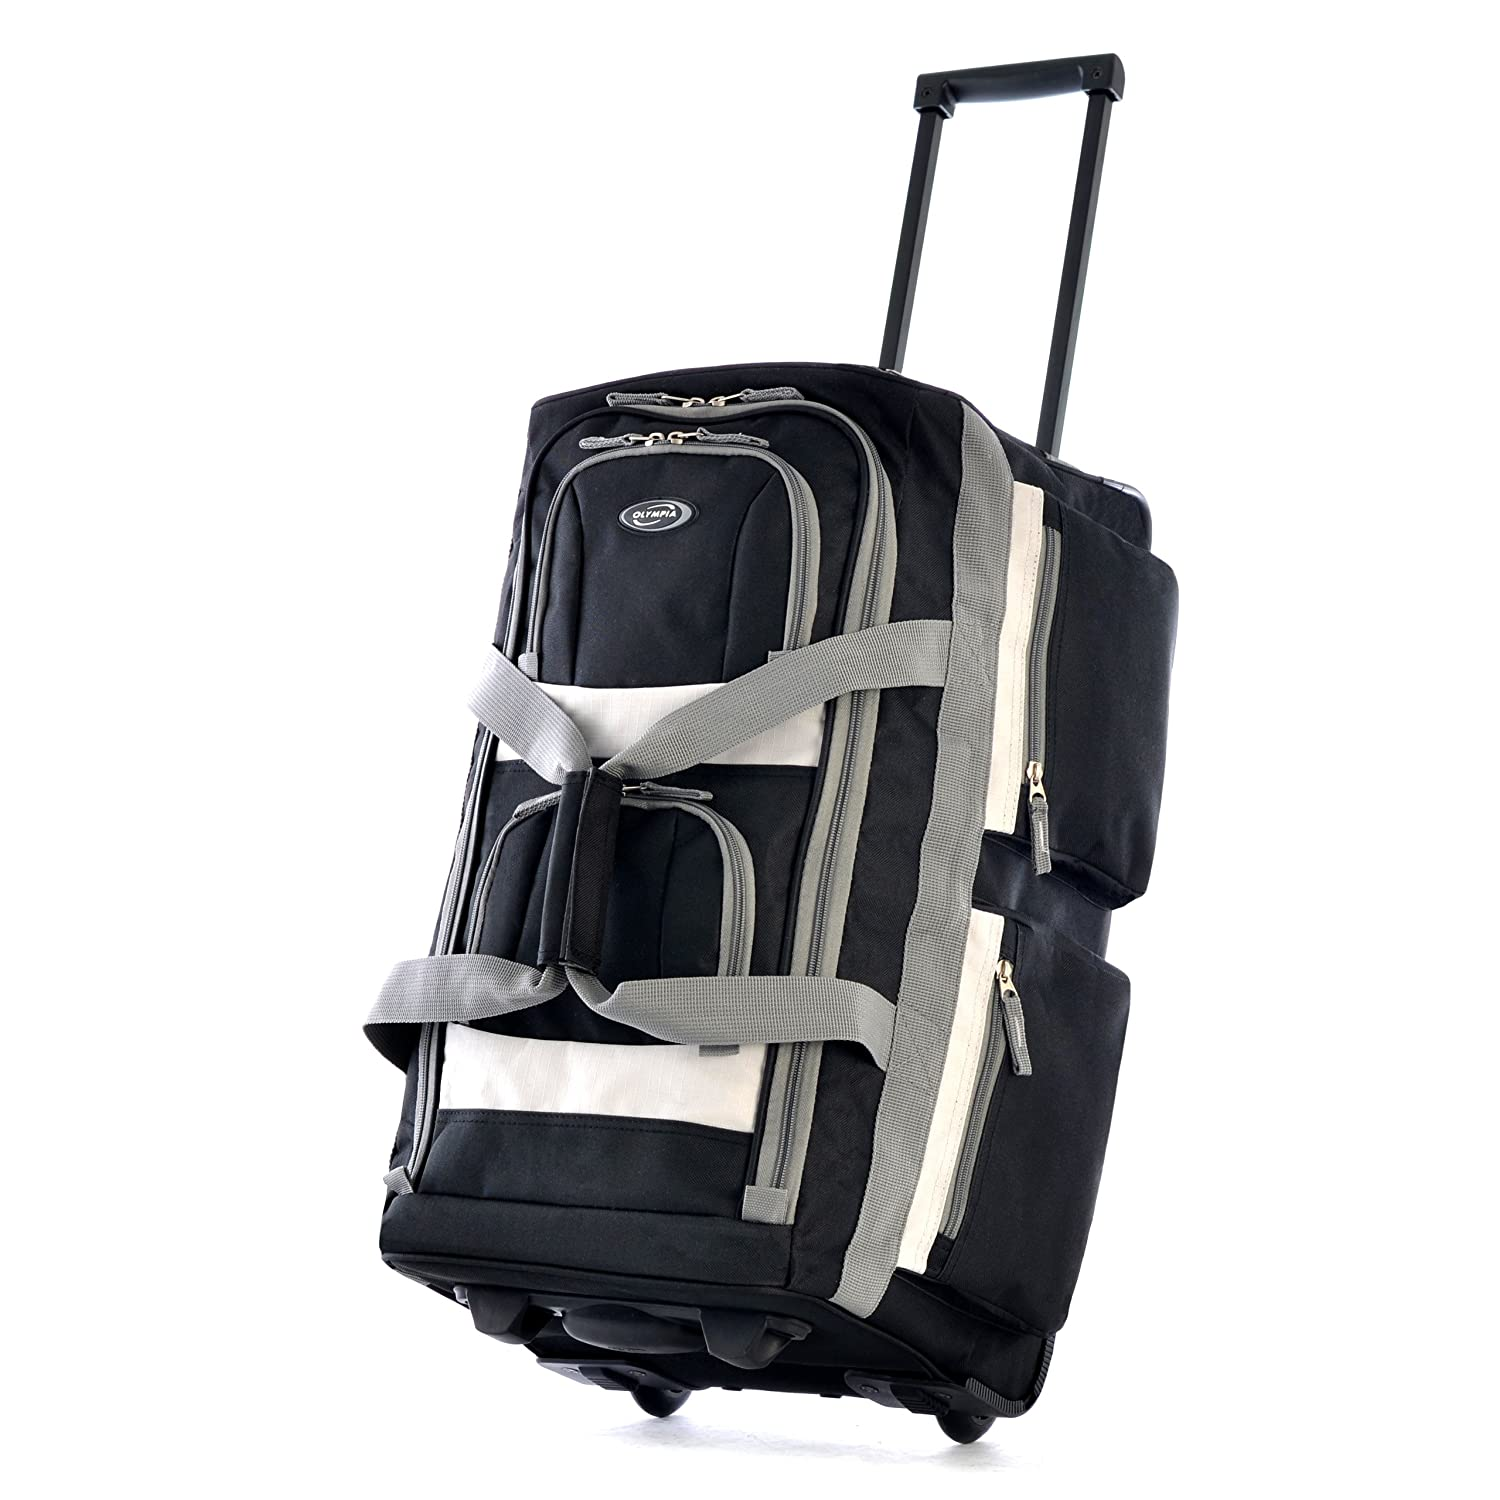 The Olympia Luggage Pocket Rolling Duffel Bag travel product recommended by adil sadout on Lifney.